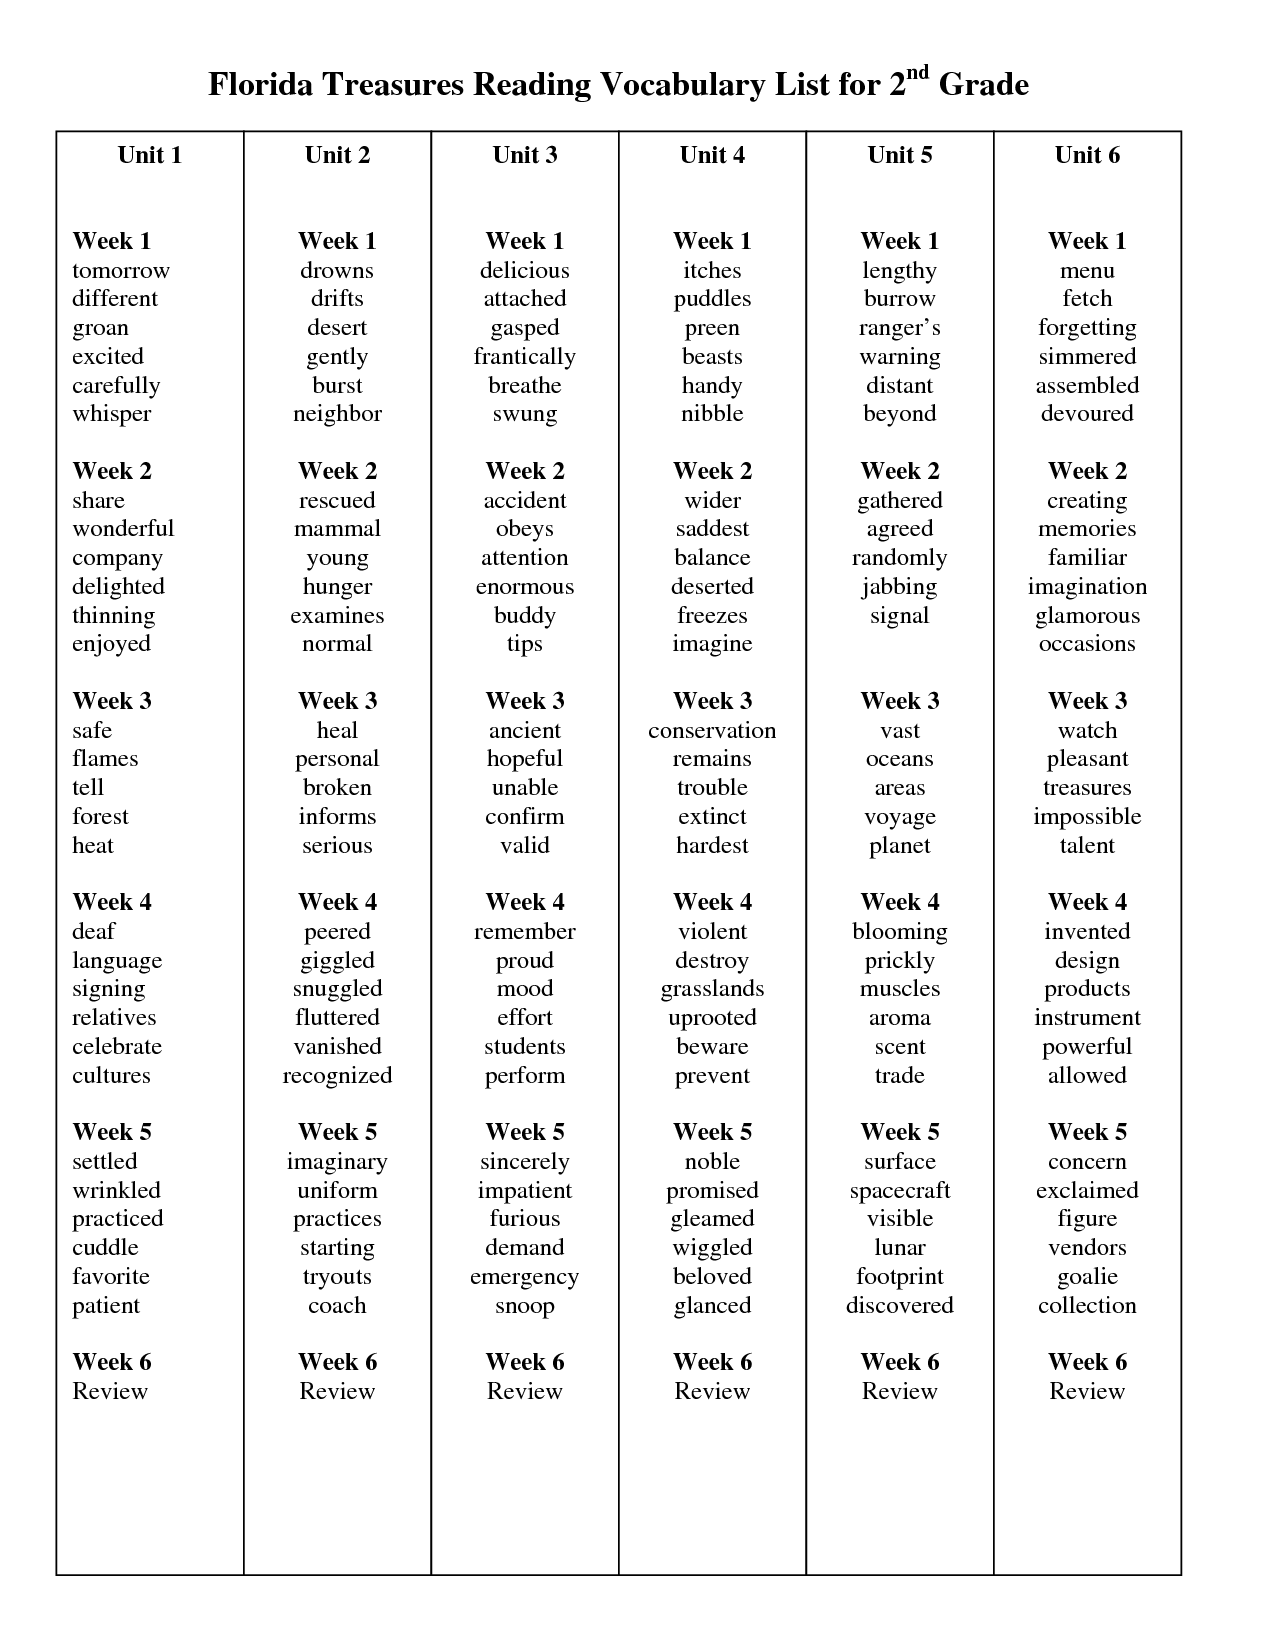 worksheet Fifth Grade Vocabulary list of core words second grade florida treasures reading vocabulary for 2 grade